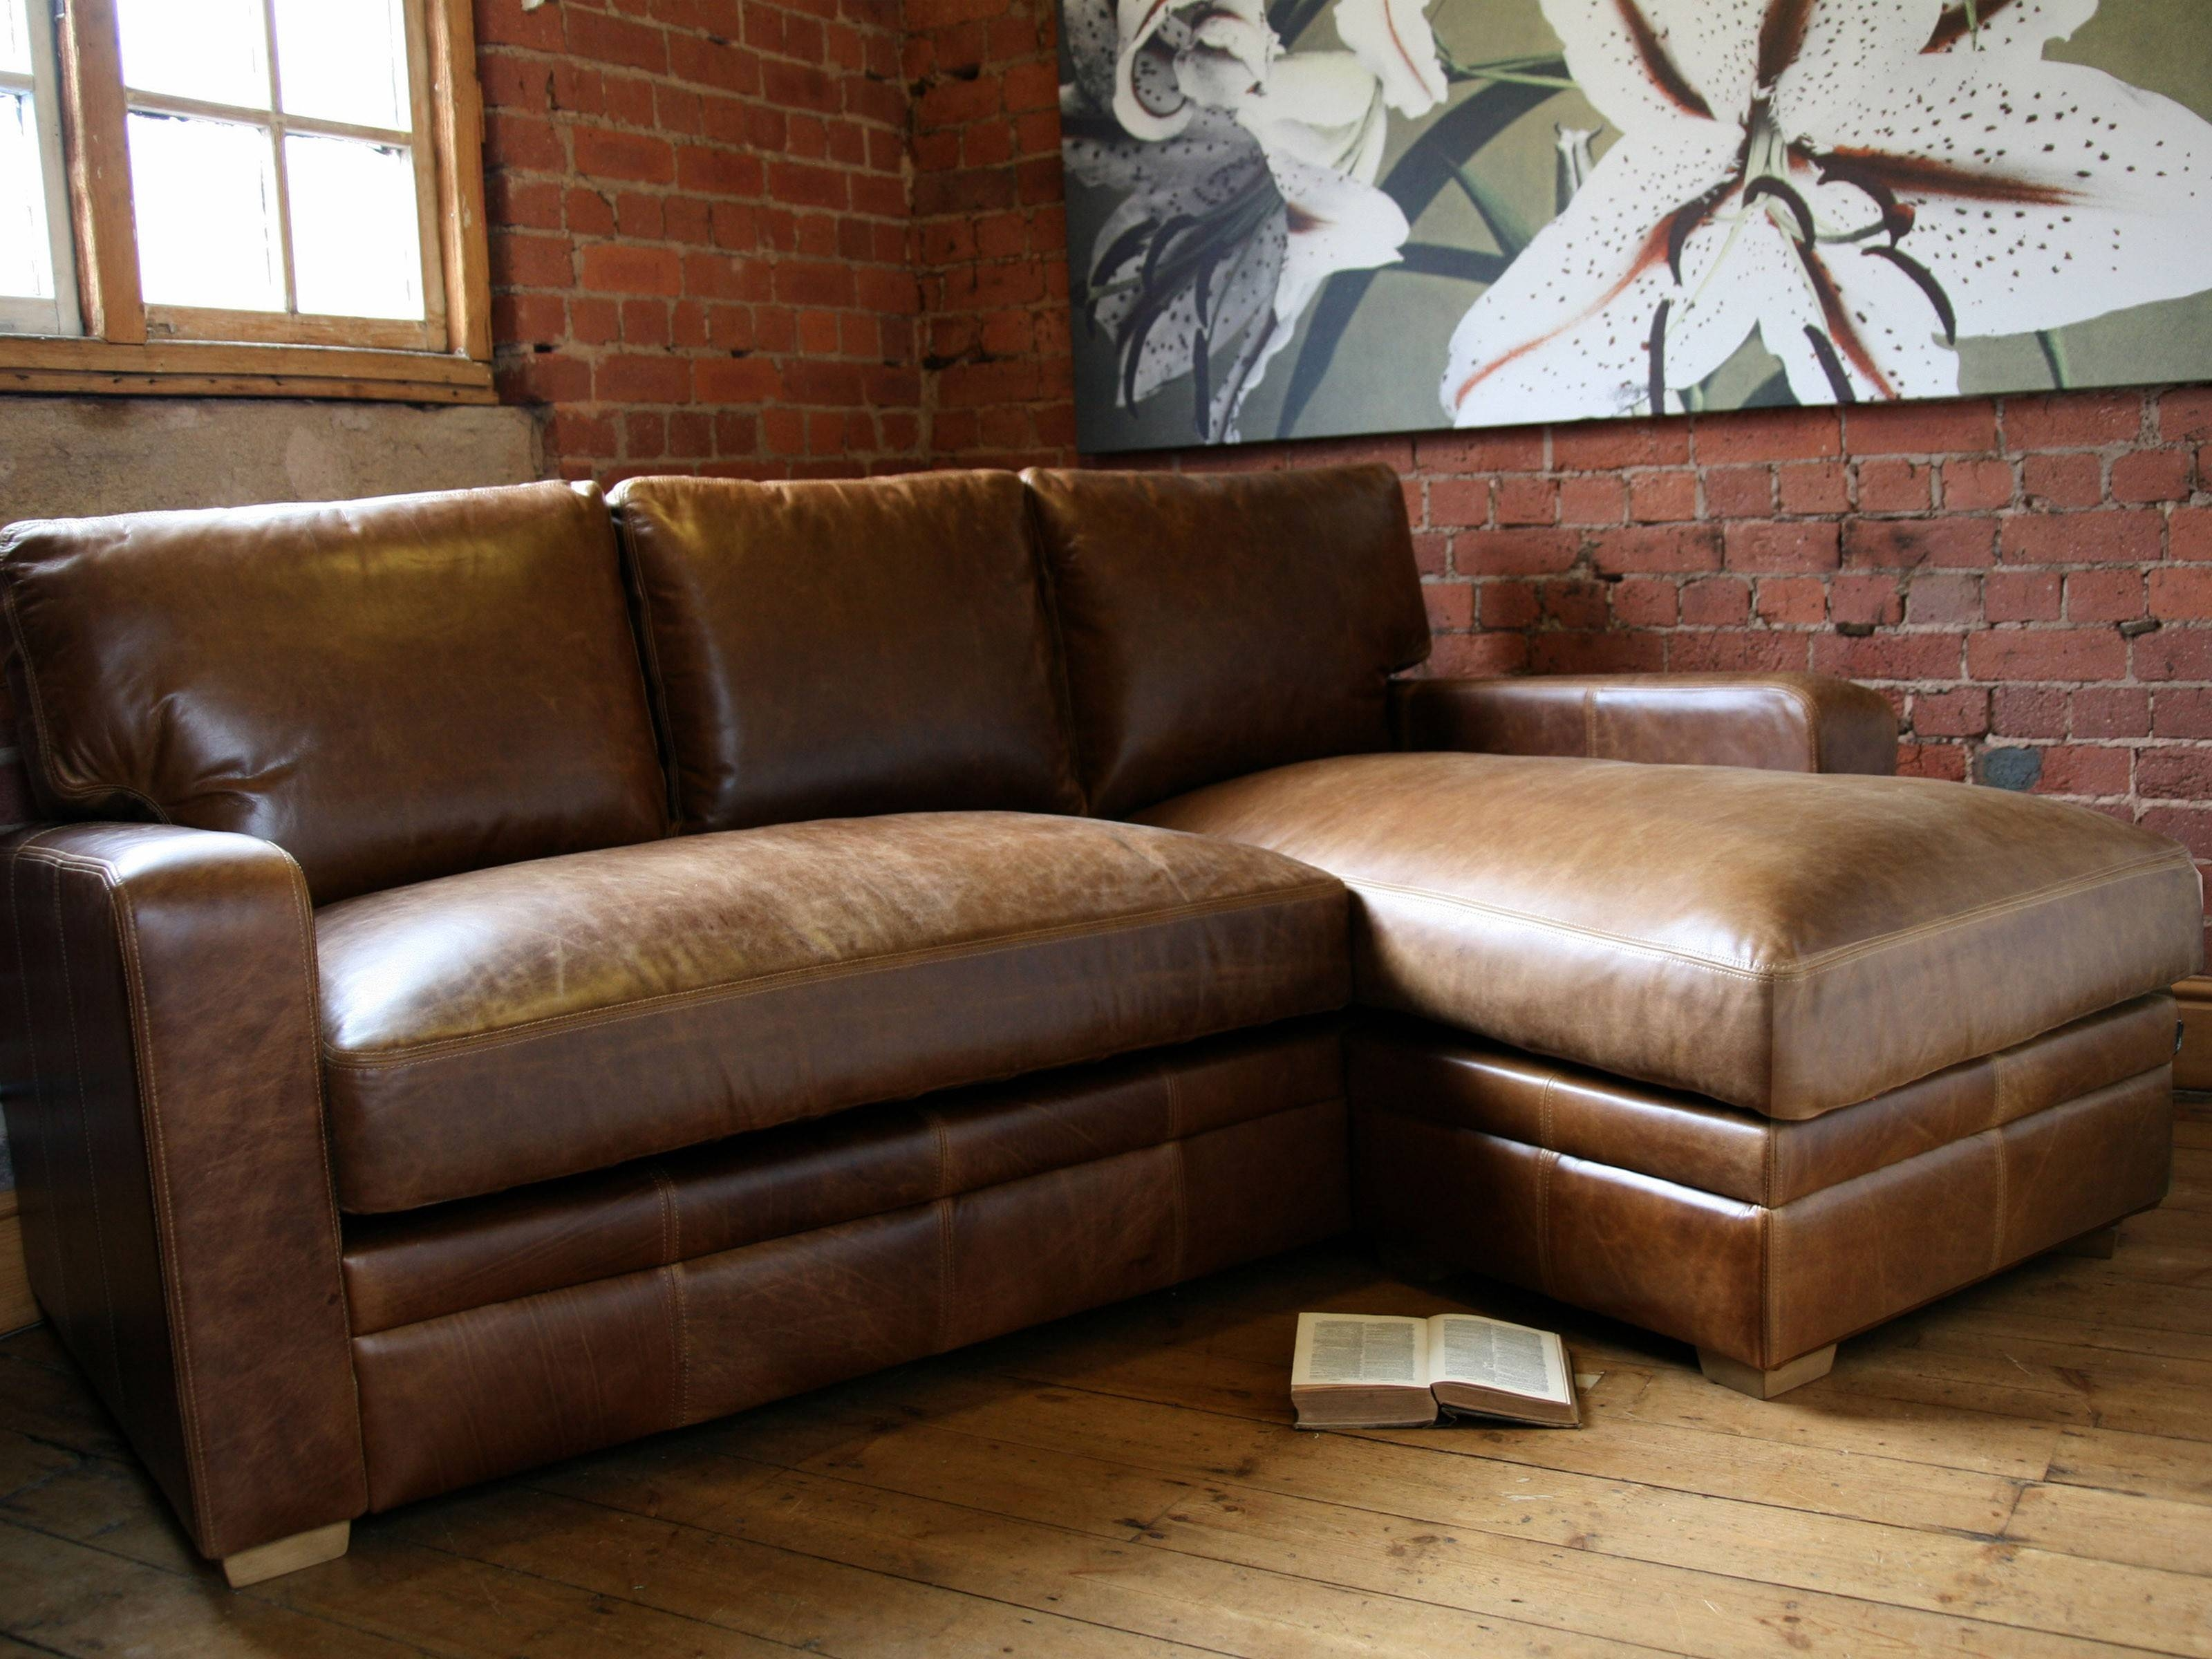 Furniture: Add Luxury To Your Home With Full Grain Leather throughout Leather Sofa Sectionals For Sale (Image 2 of 30)